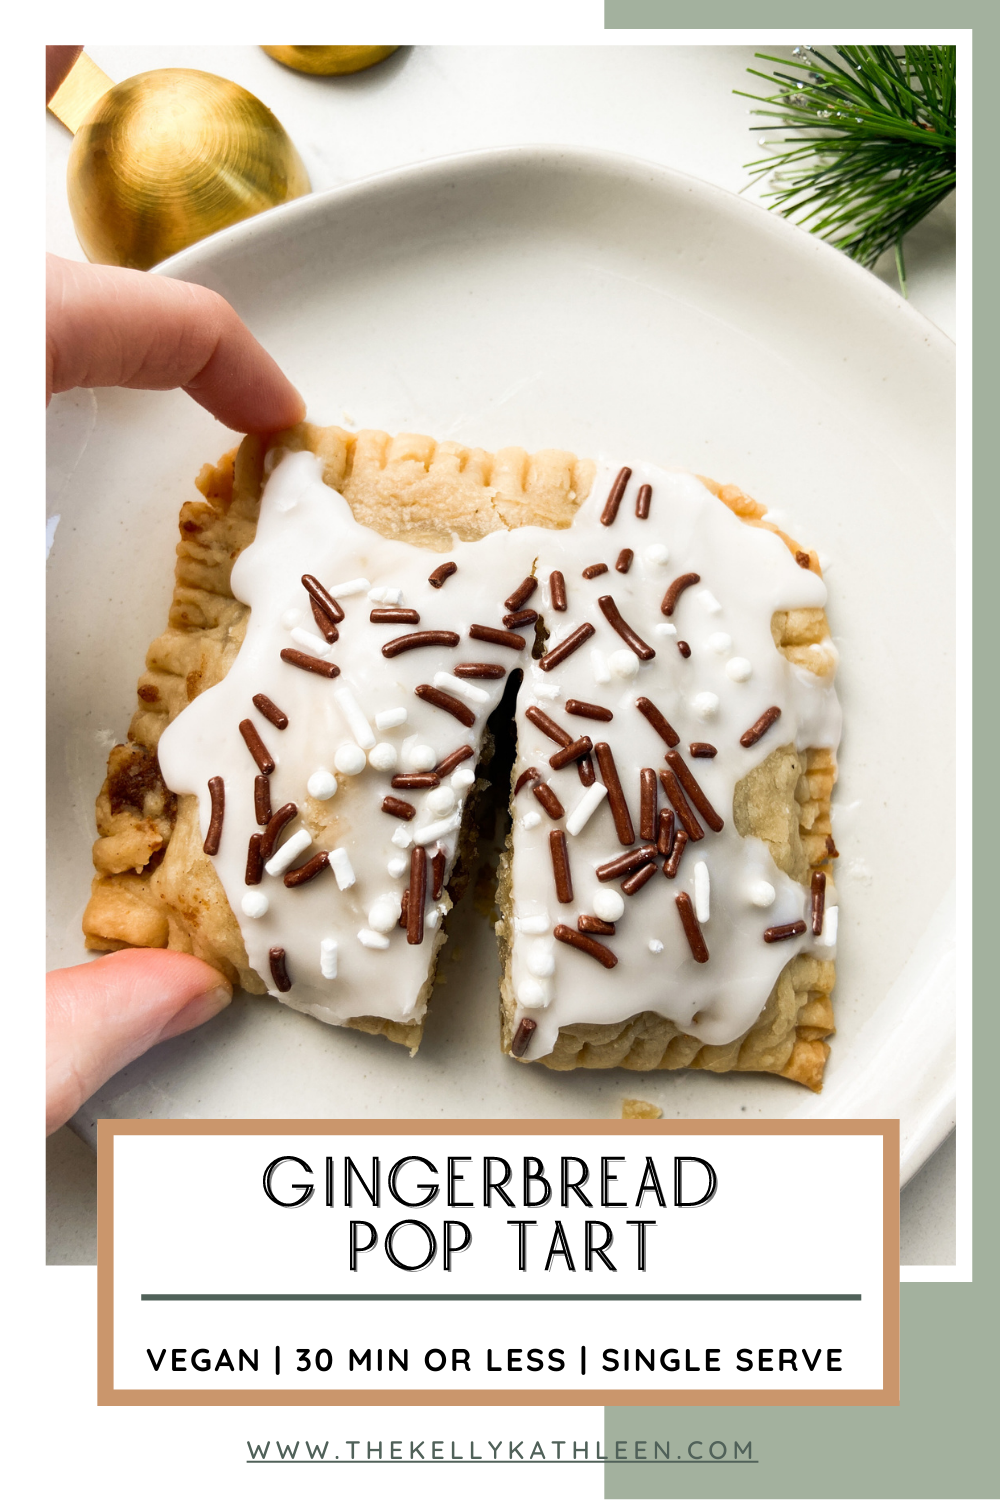 Gingerbread Pop Tart